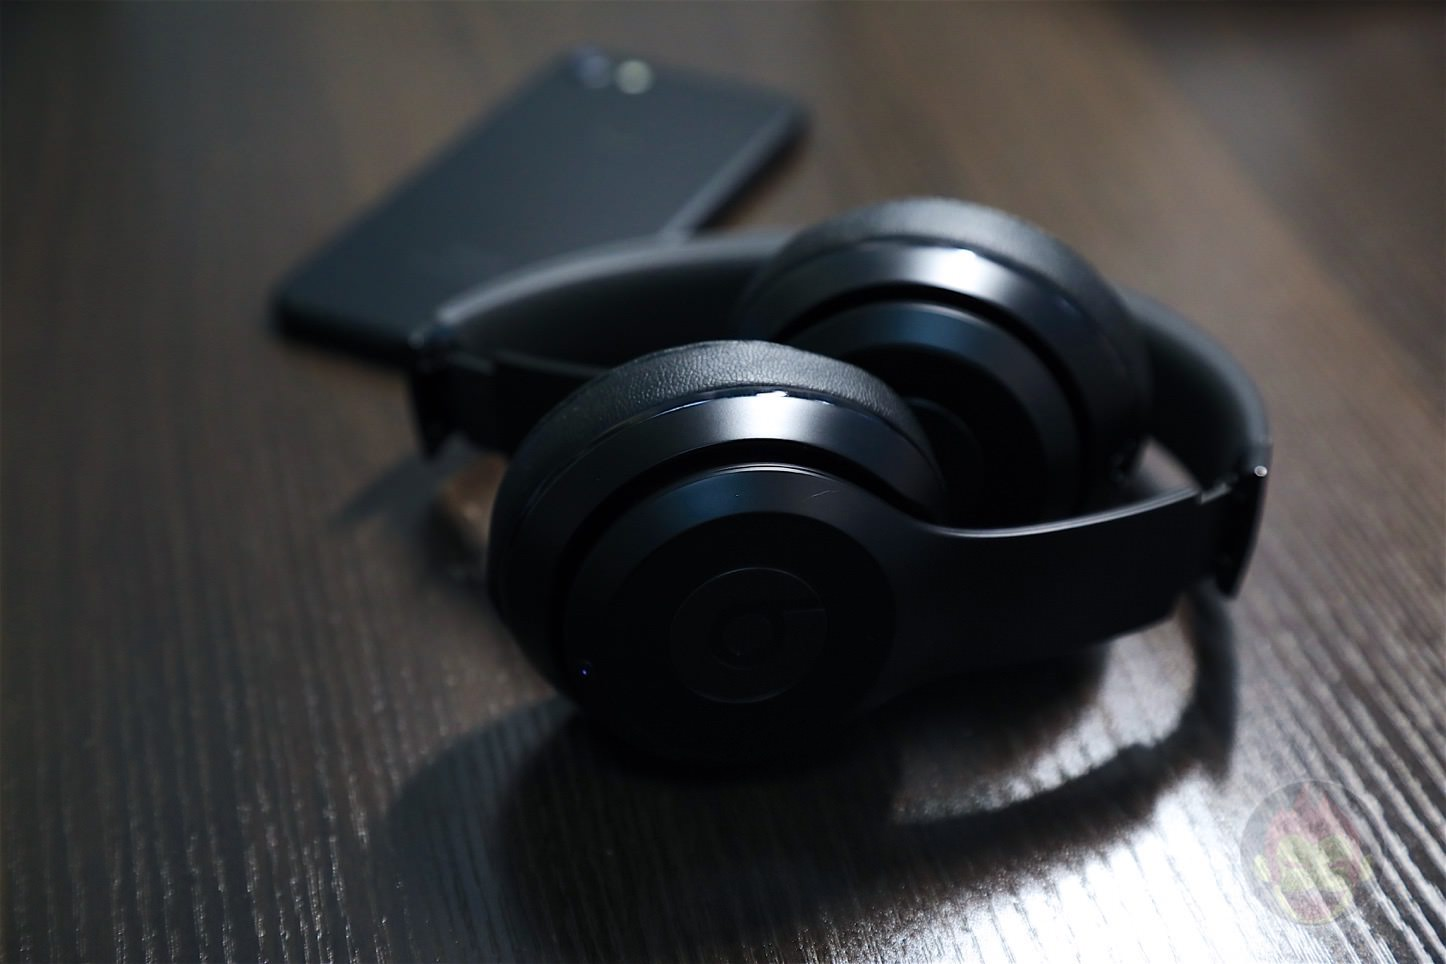 Beats-Solo3-Wireless-Headphones-03.jpg